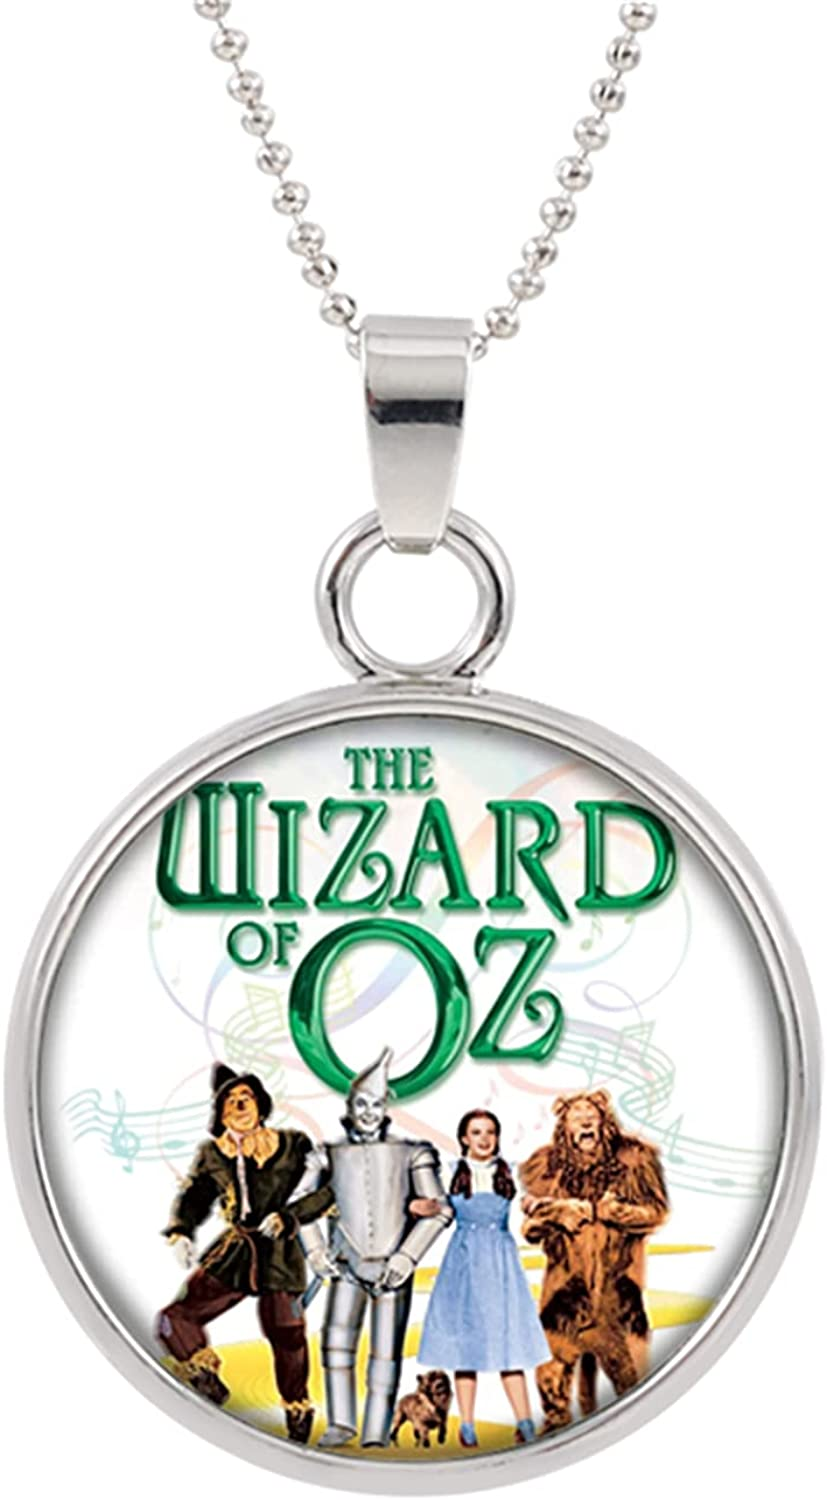 Wizard of Oz Necklace, Anime Cartoon Metal Pendants, Gifts for Women, Men, Girls and Boys